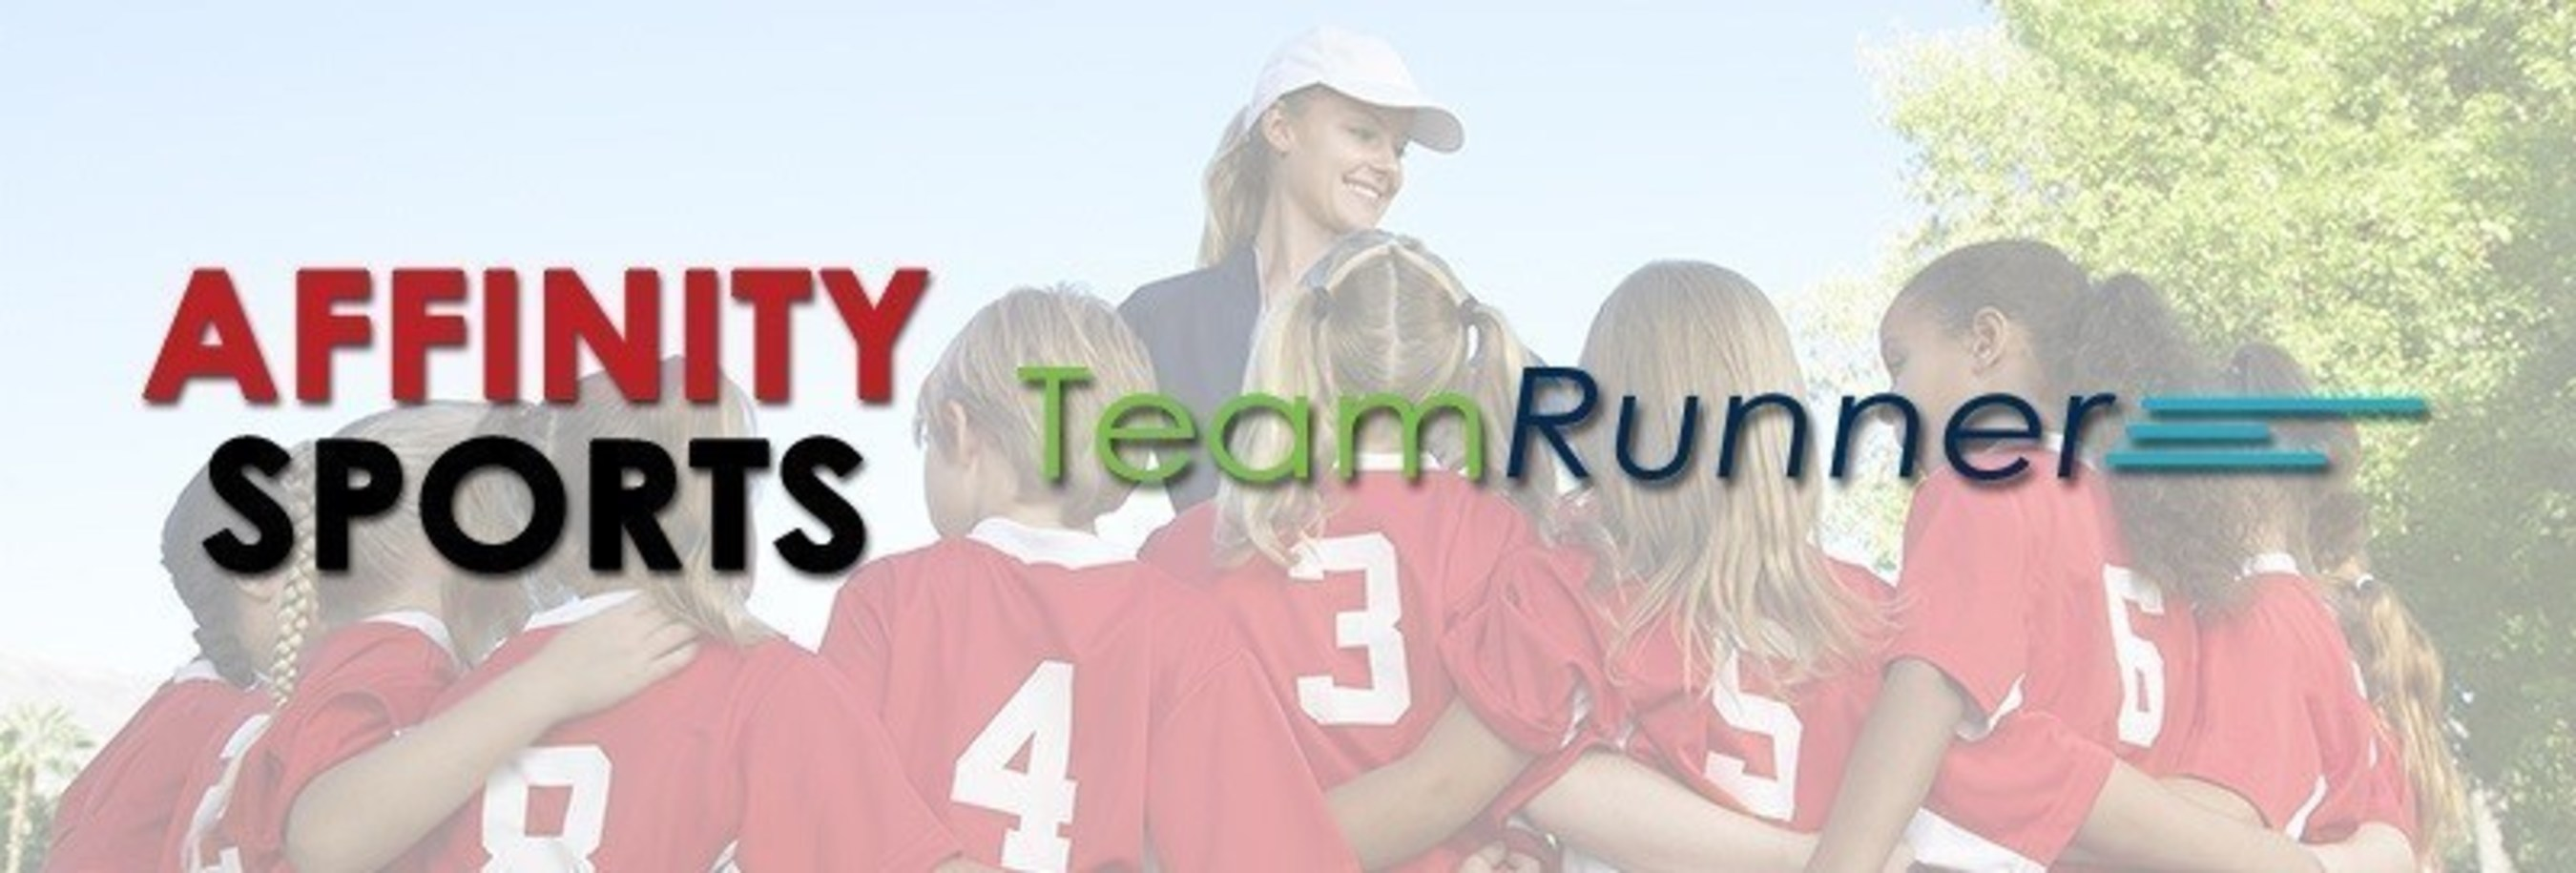 Affinity Sports Welcomes TeamRunner To Affinity Advantage